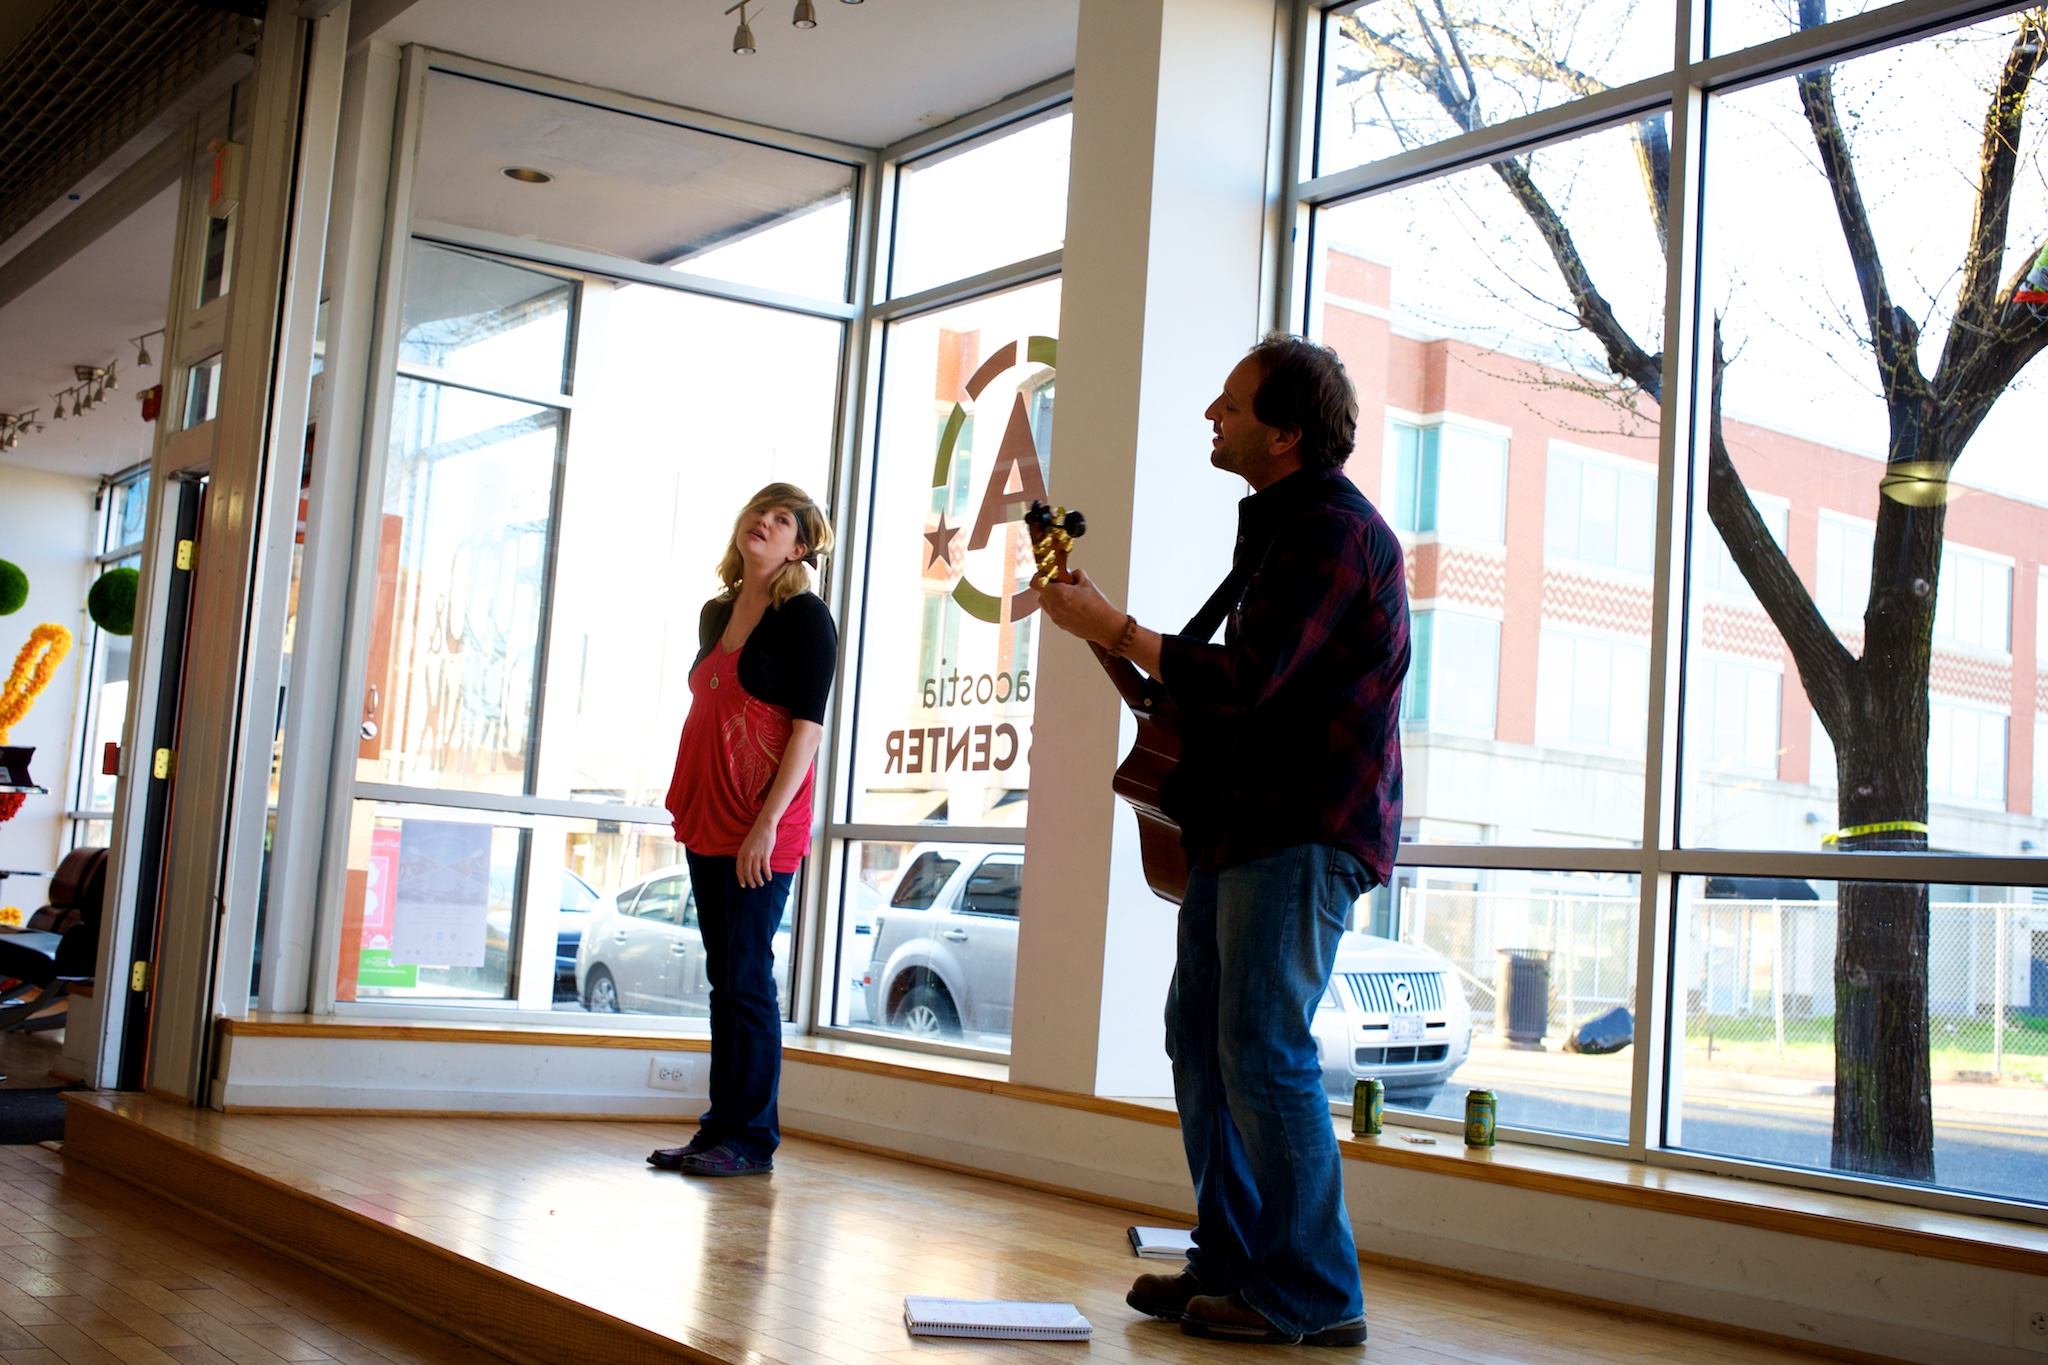 liveart-inaday2015-192.jpg